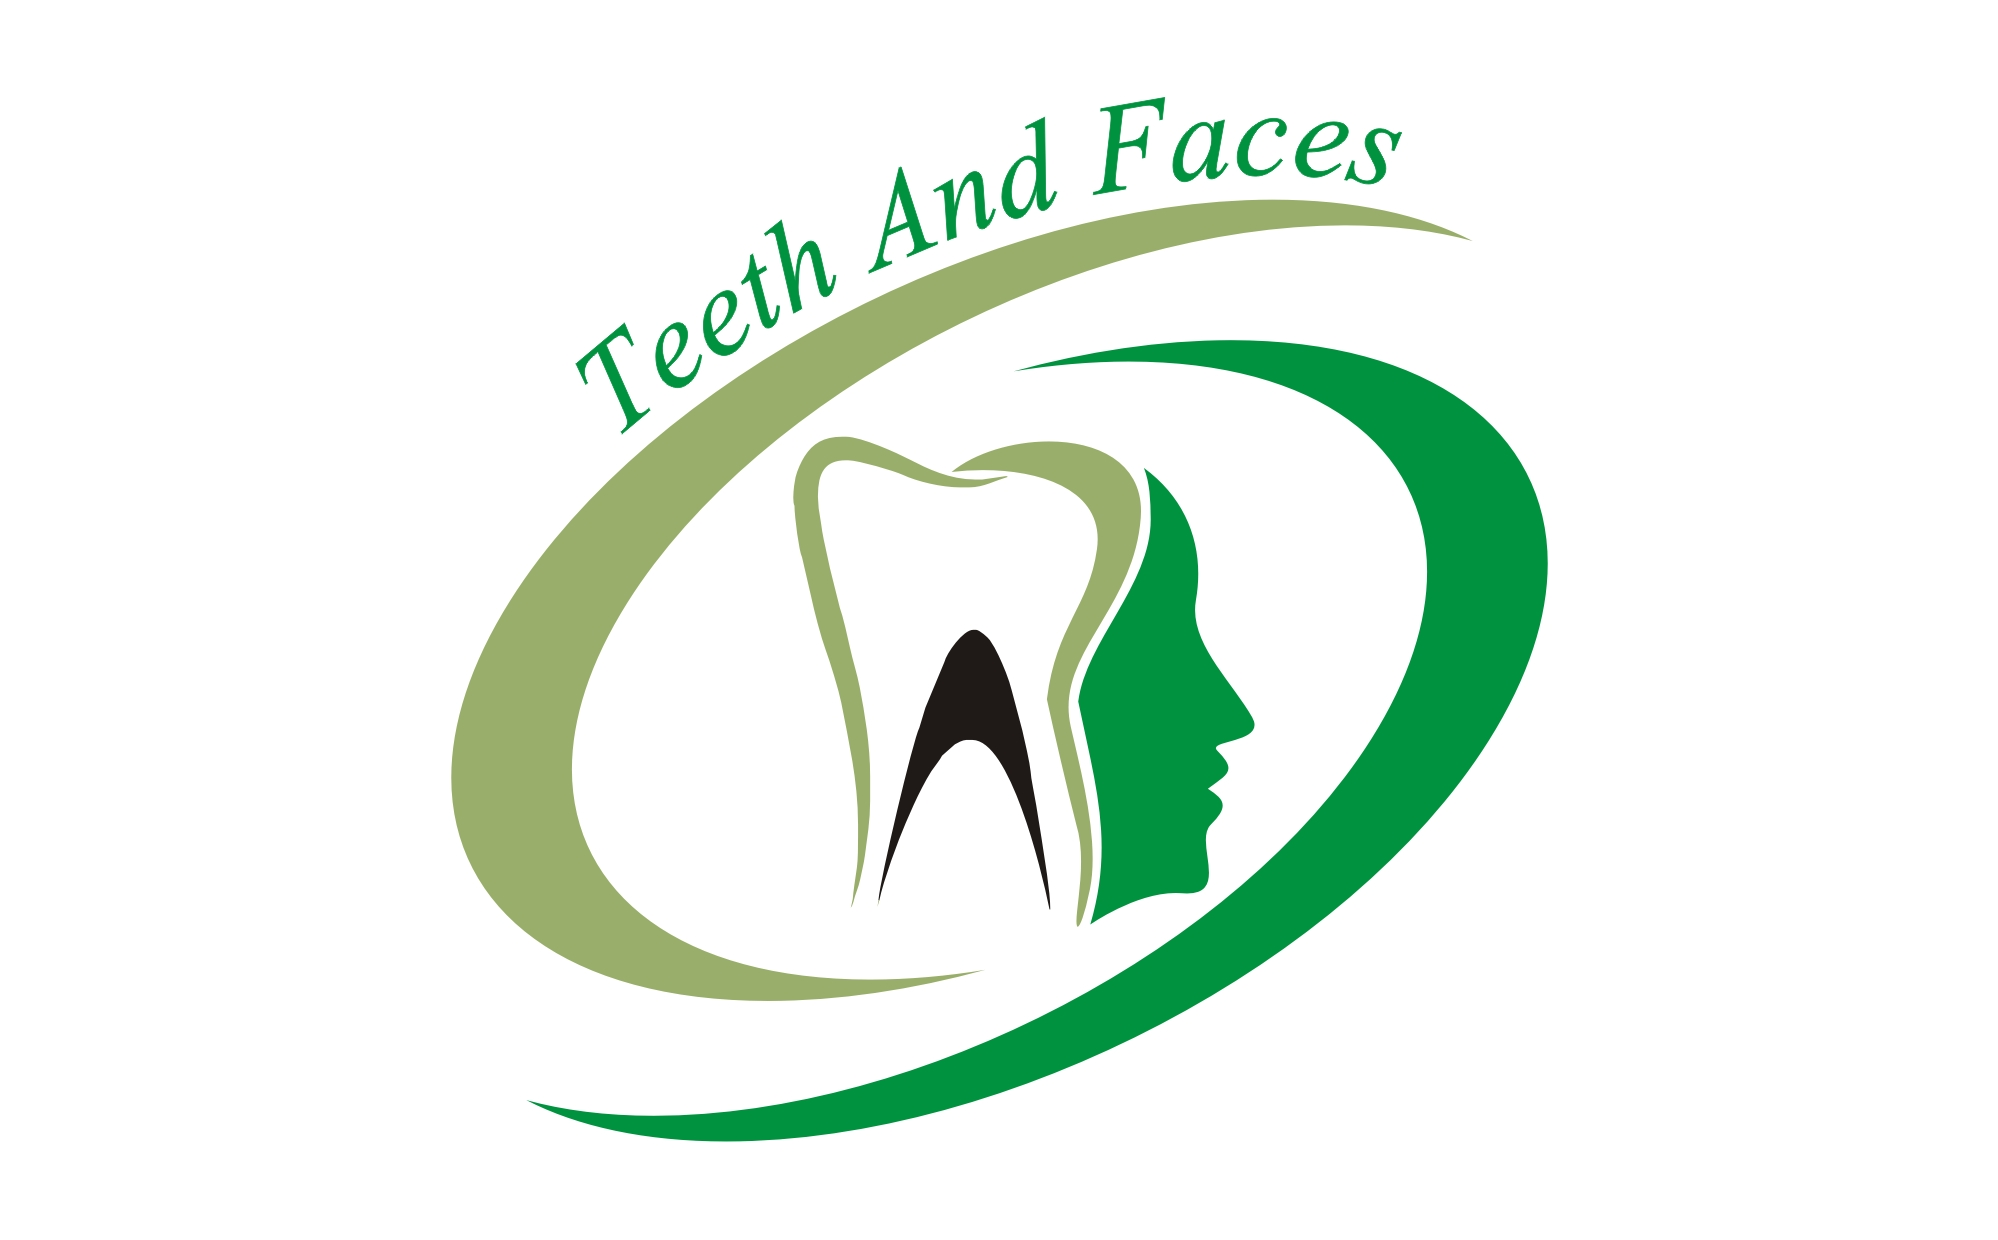 Teeth and Faces Cosmetic Dental Clinic and Implant Center